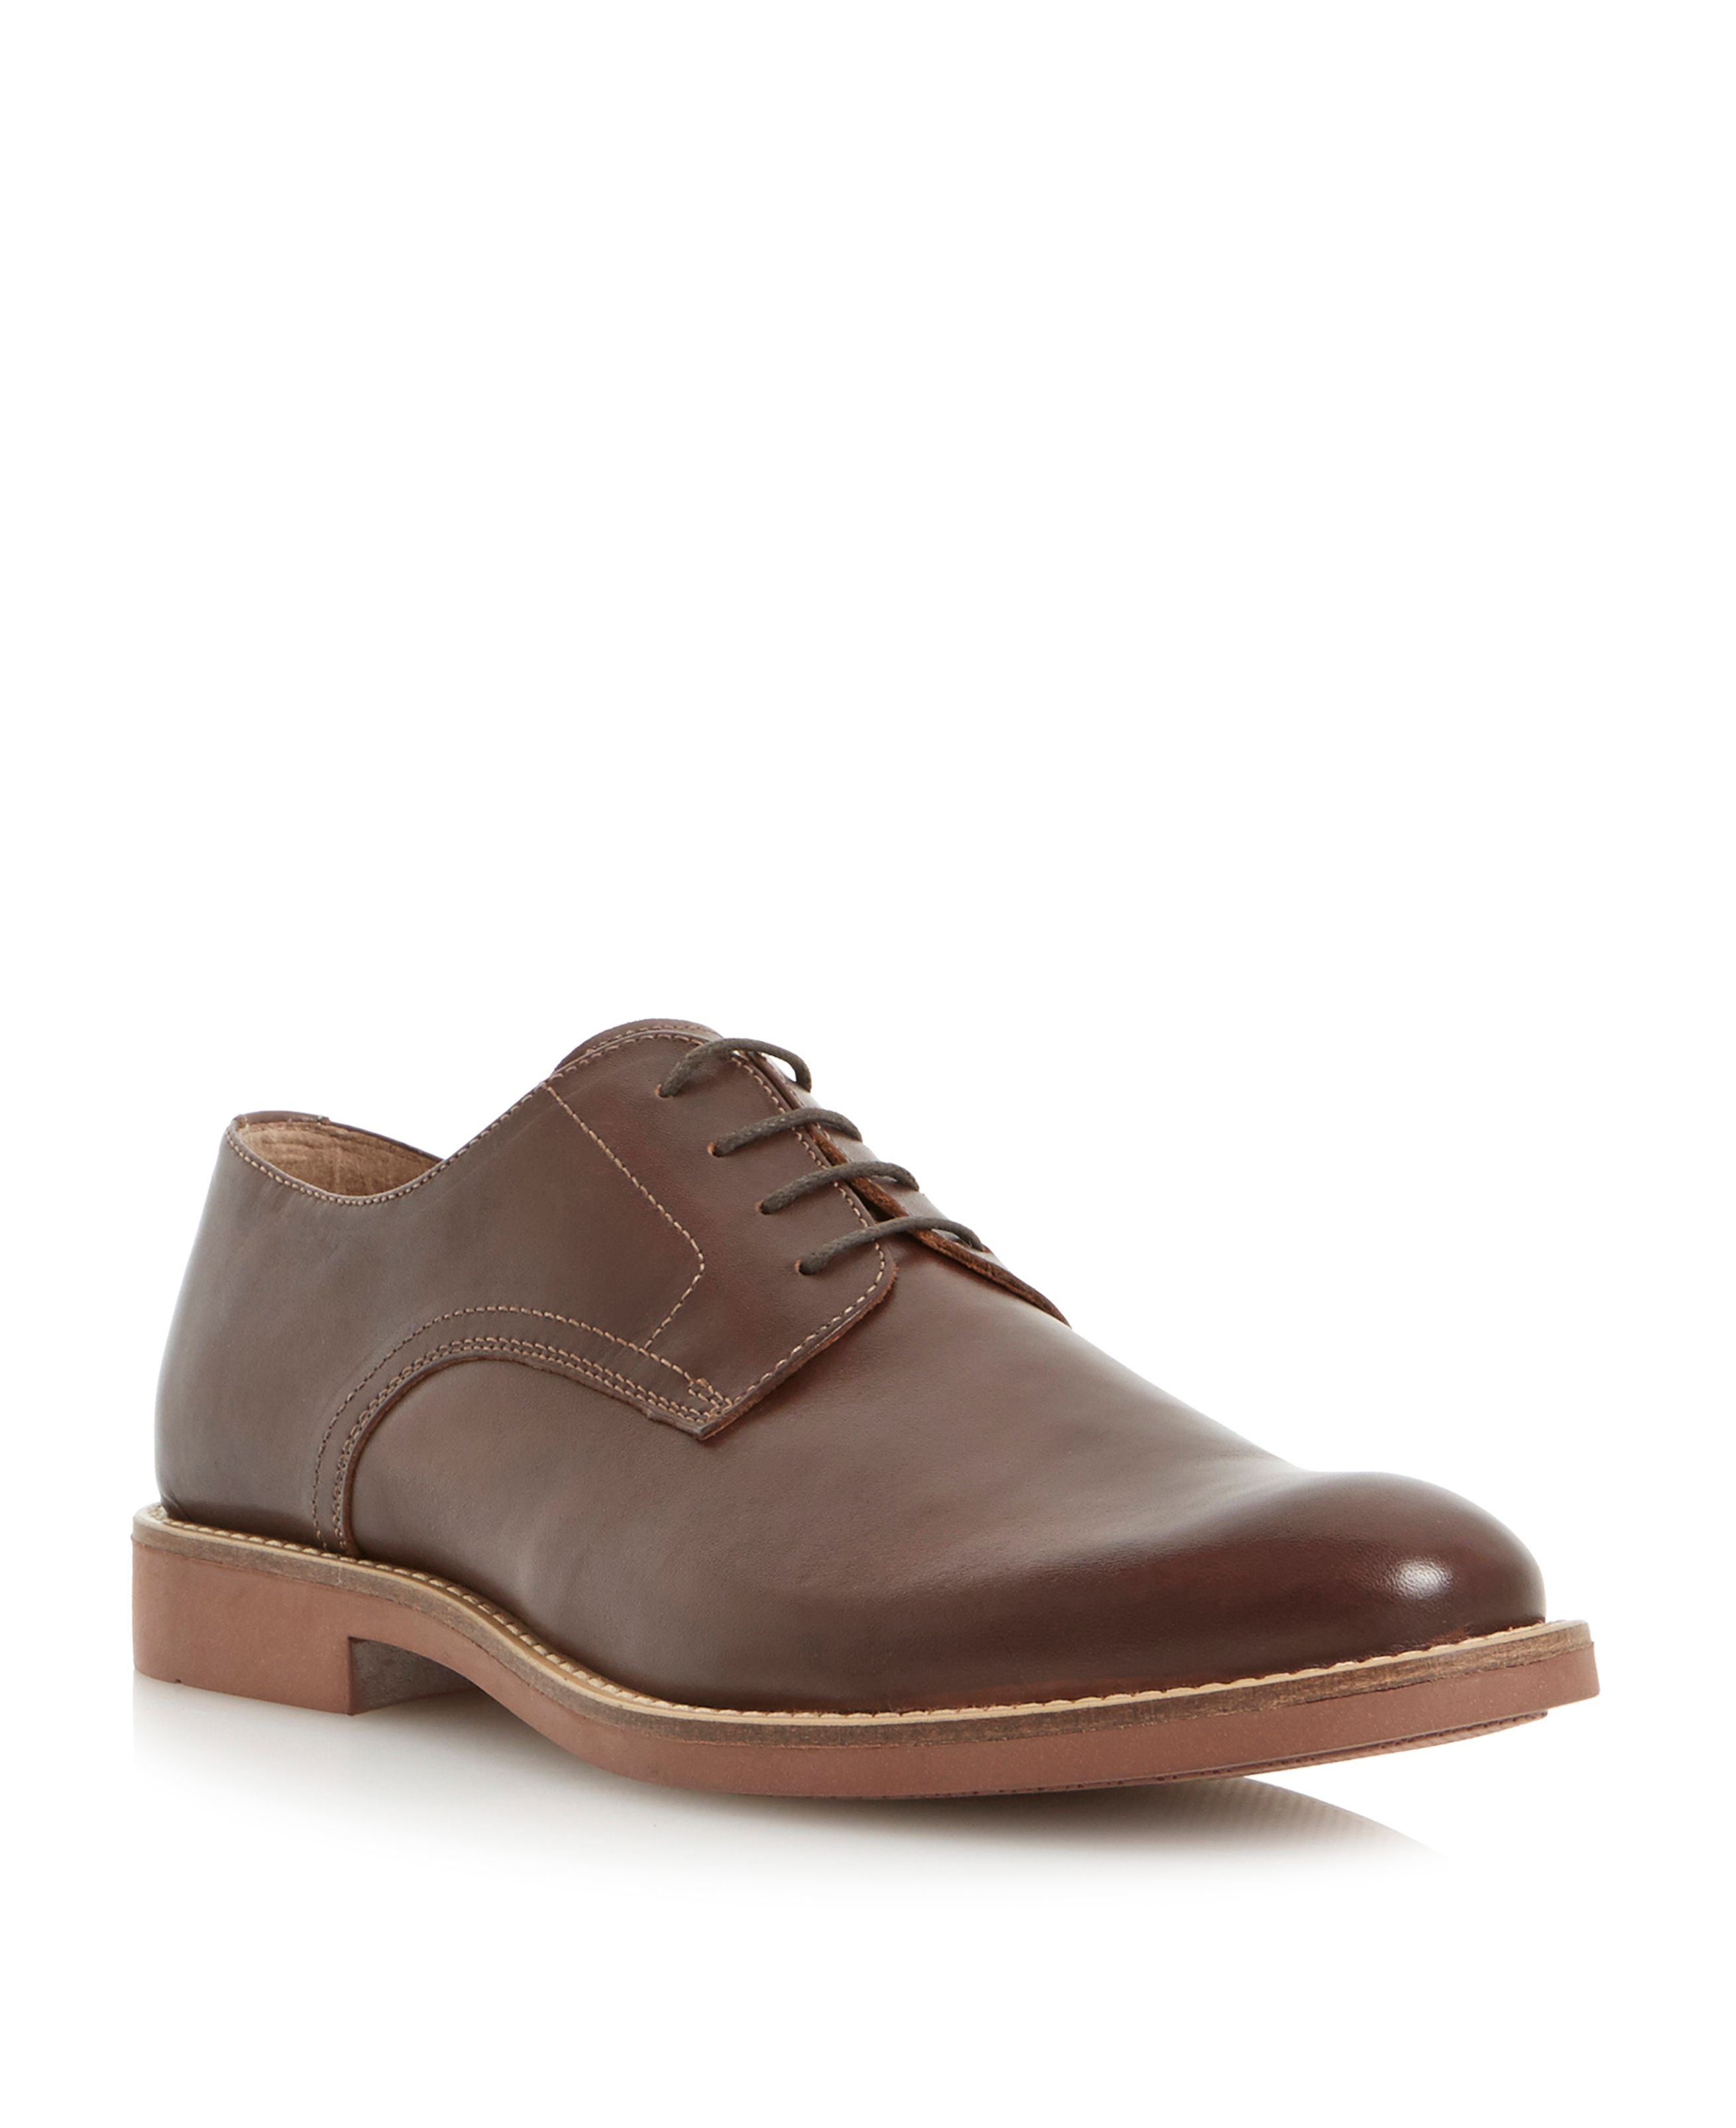 Babel leather lace up gibson shoes